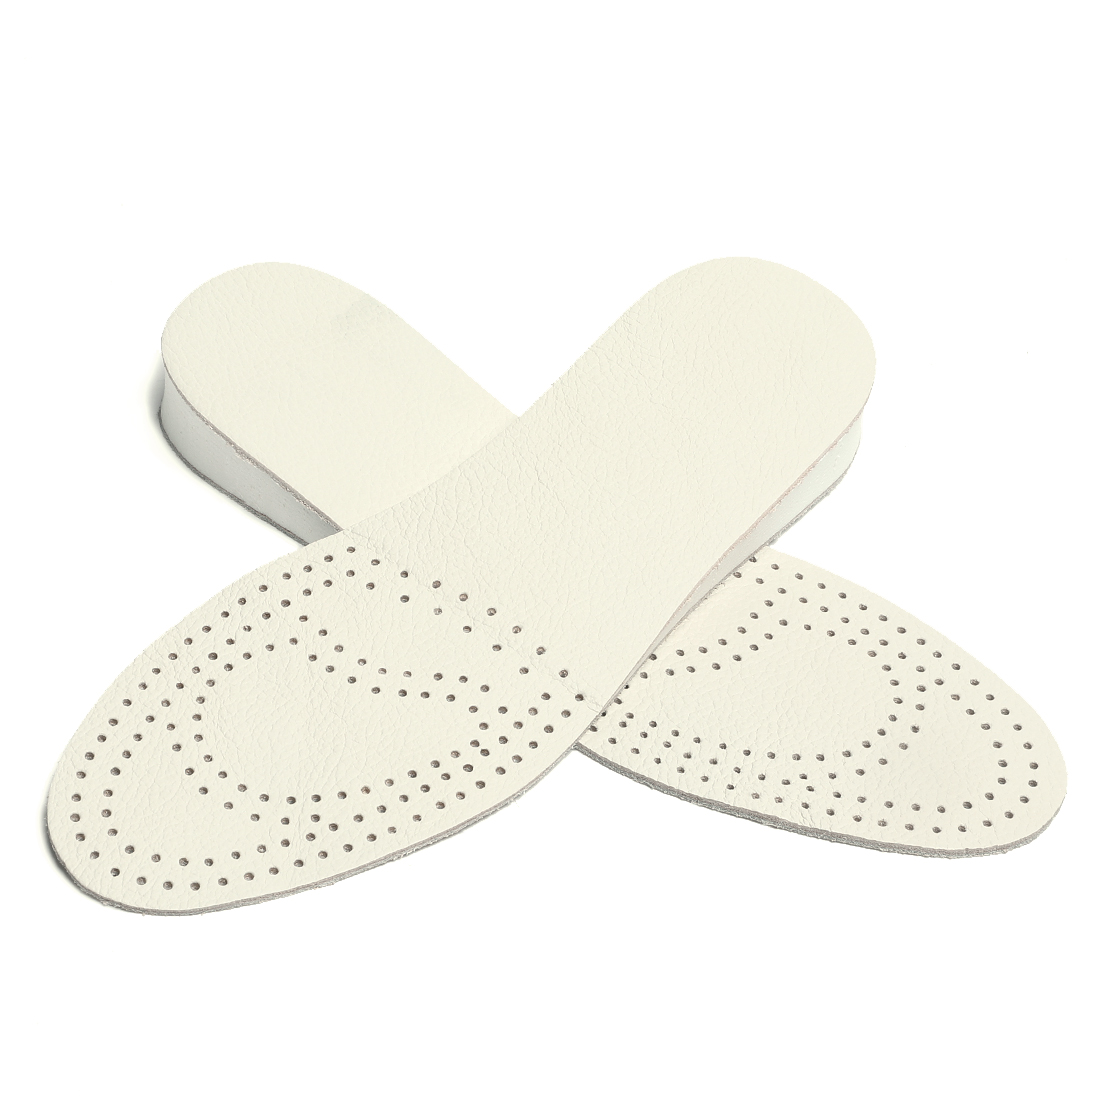 """Women Men Leather Insole Breathable Pad Height Increase W11/M9 1"""" High White"""